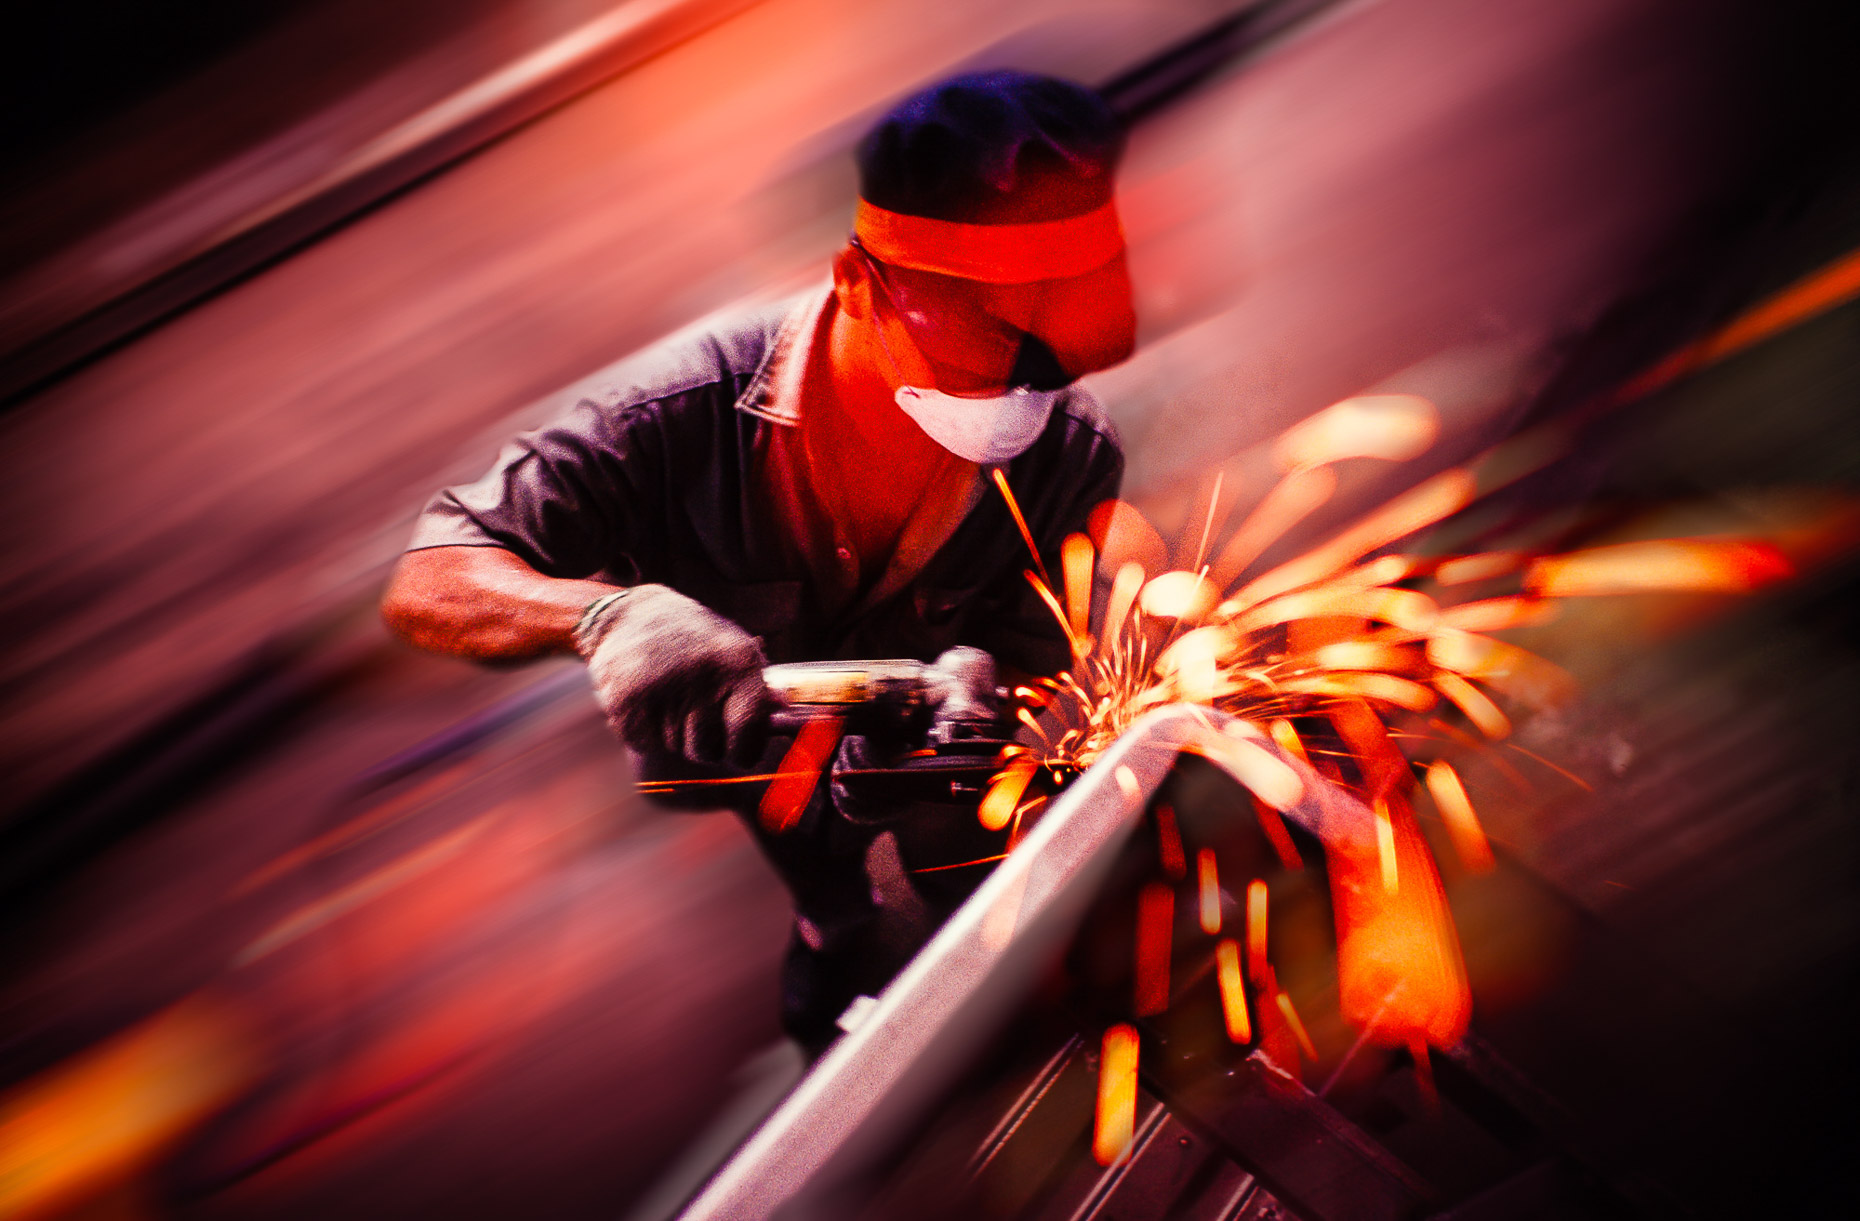 Working People On Site :  Industrial Welder Construction  :  Seattle Photographer Jed Share